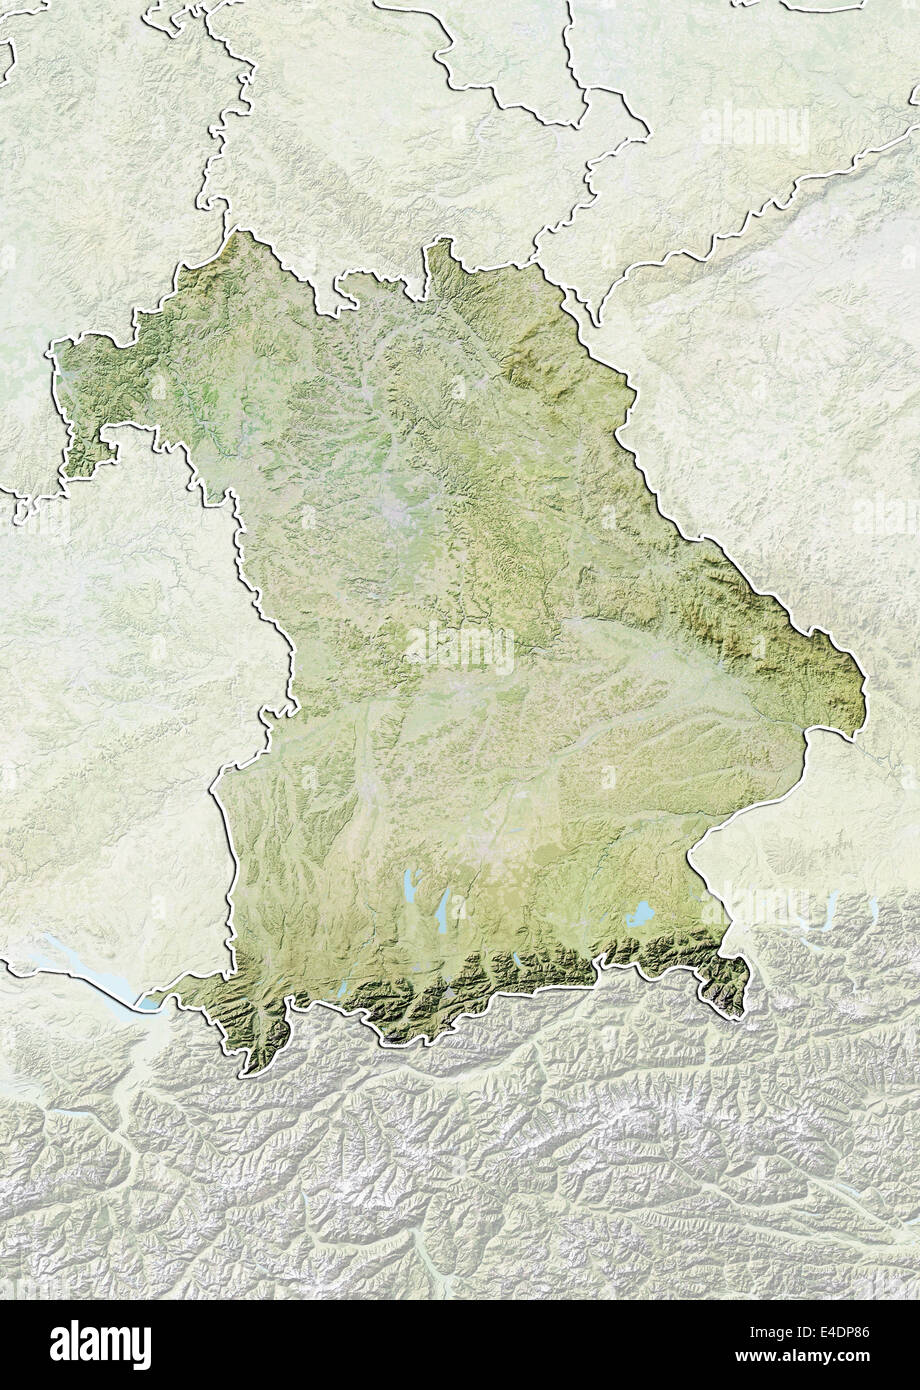 State of bavaria germany relief map stock photo royalty free state of bavaria germany relief map sciox Image collections